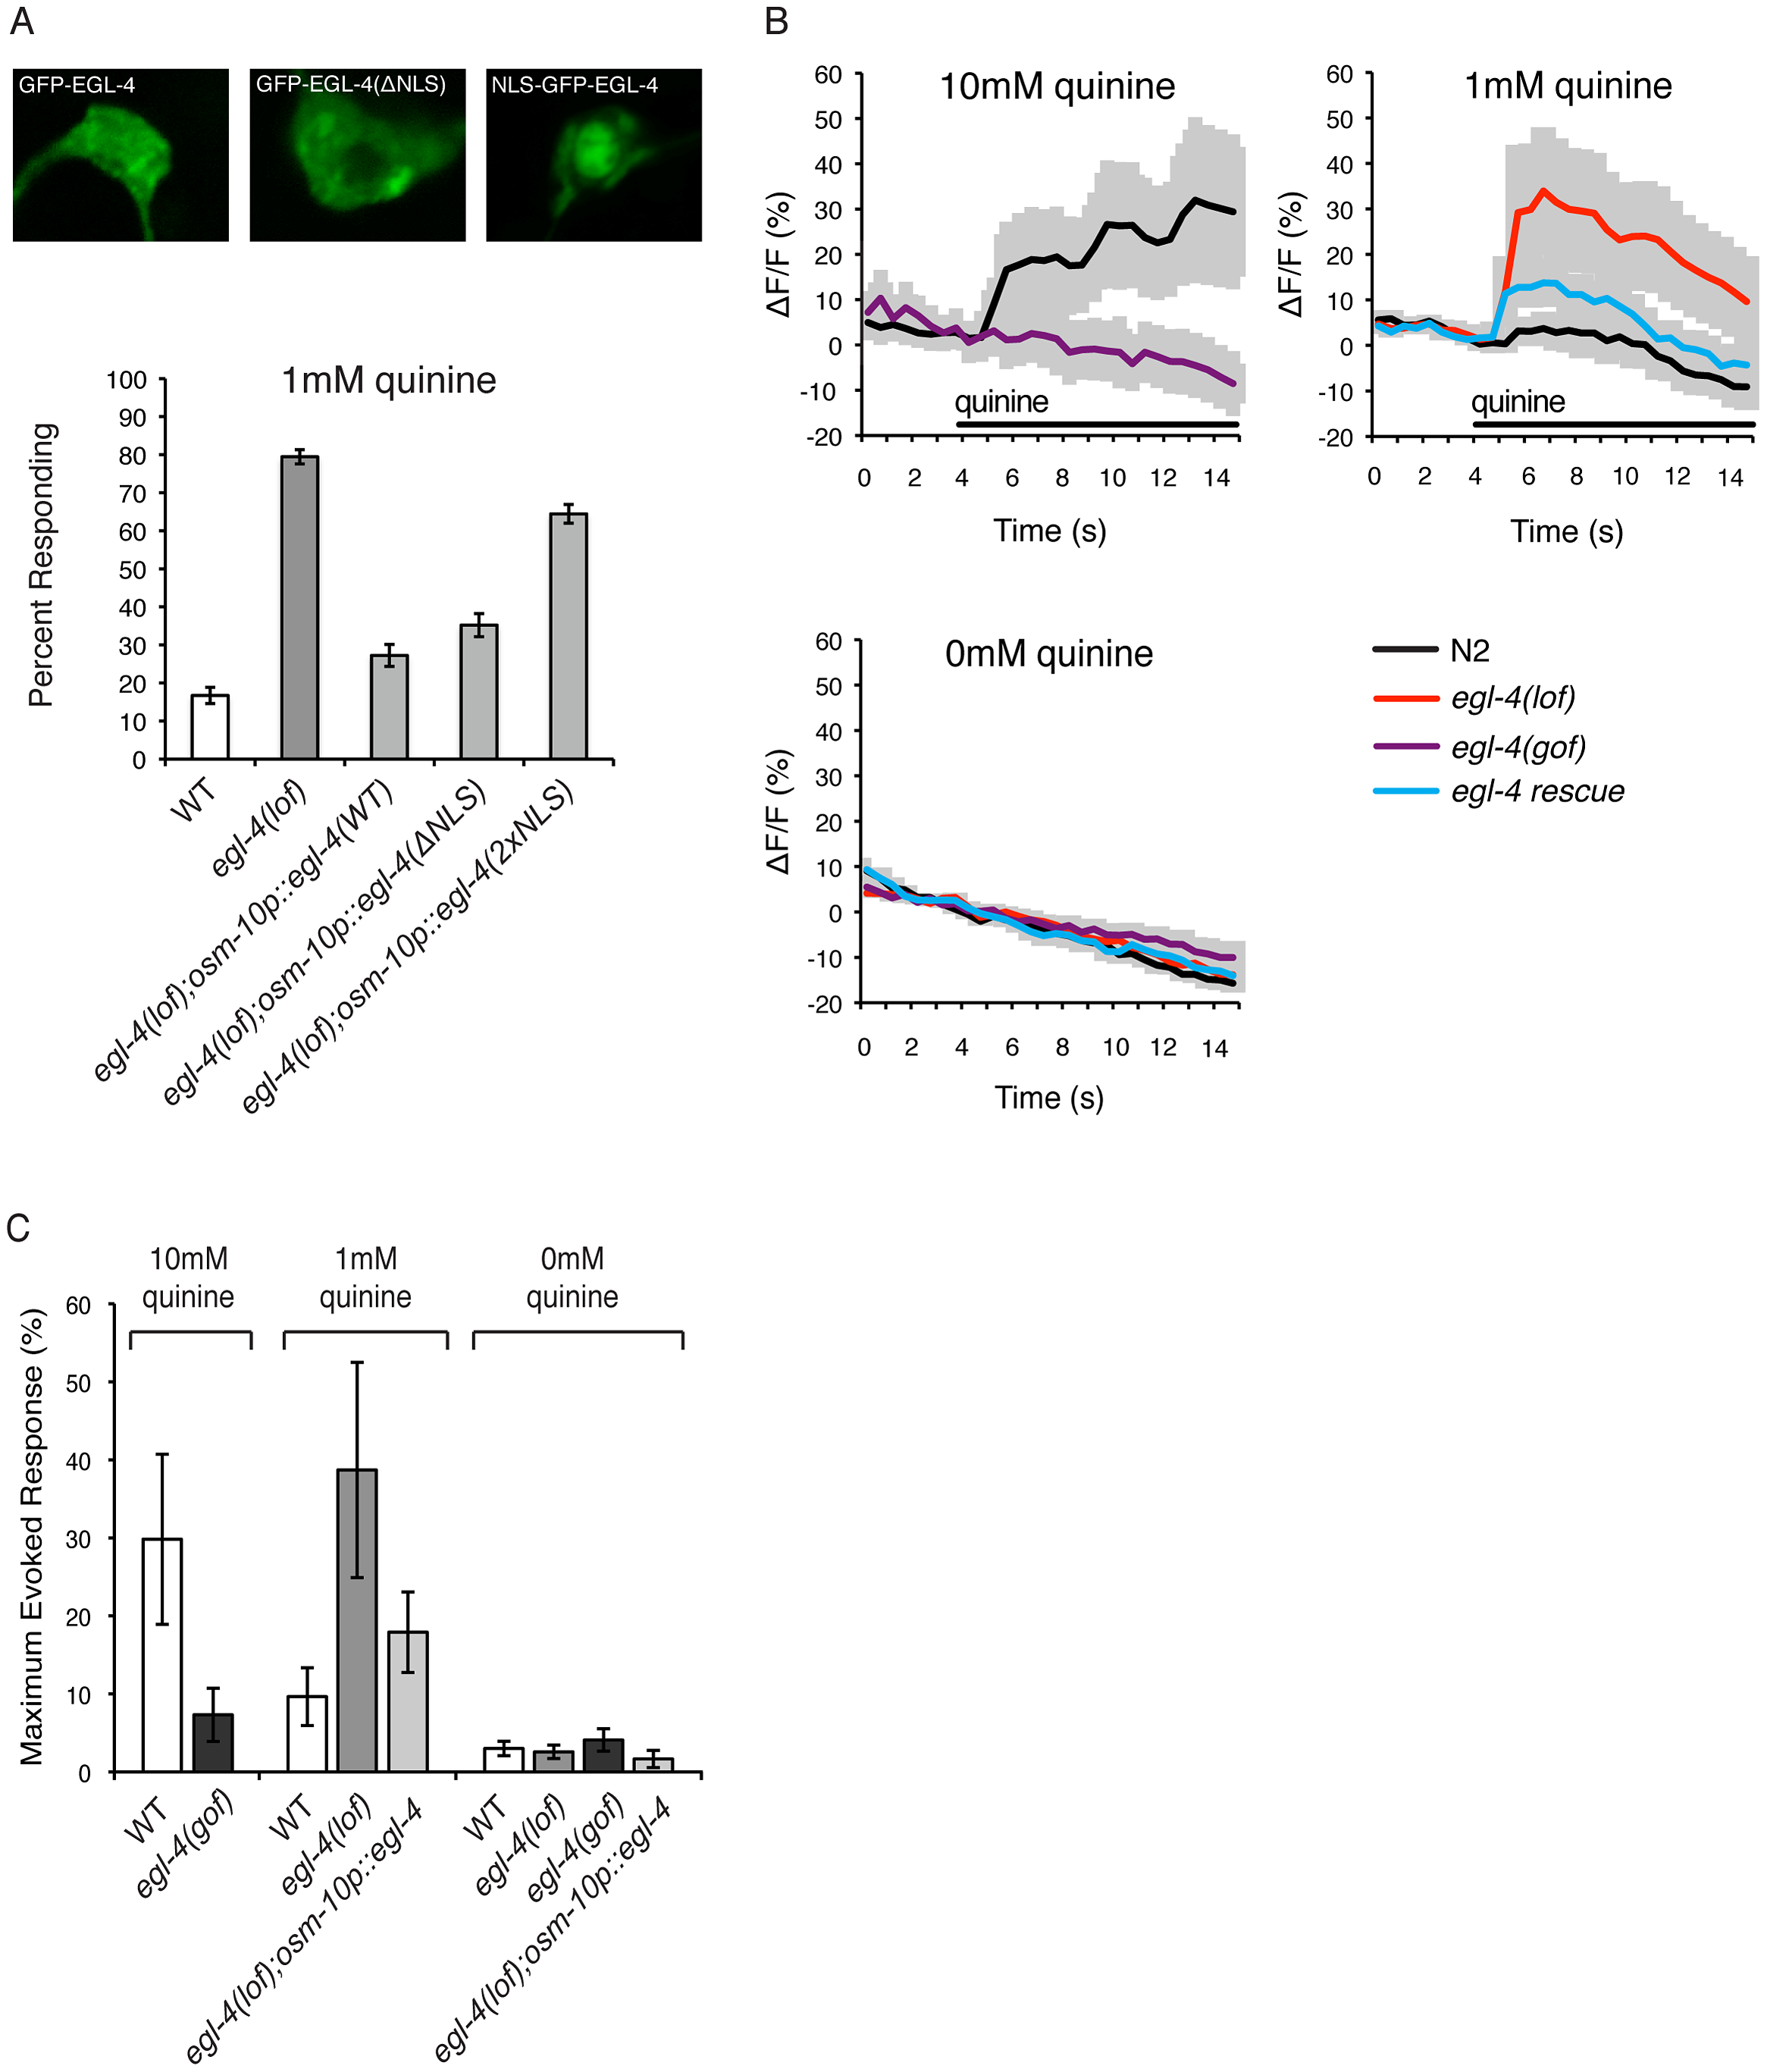 EGL-4 functions in the cytoplasm to regulate calcium signaling.